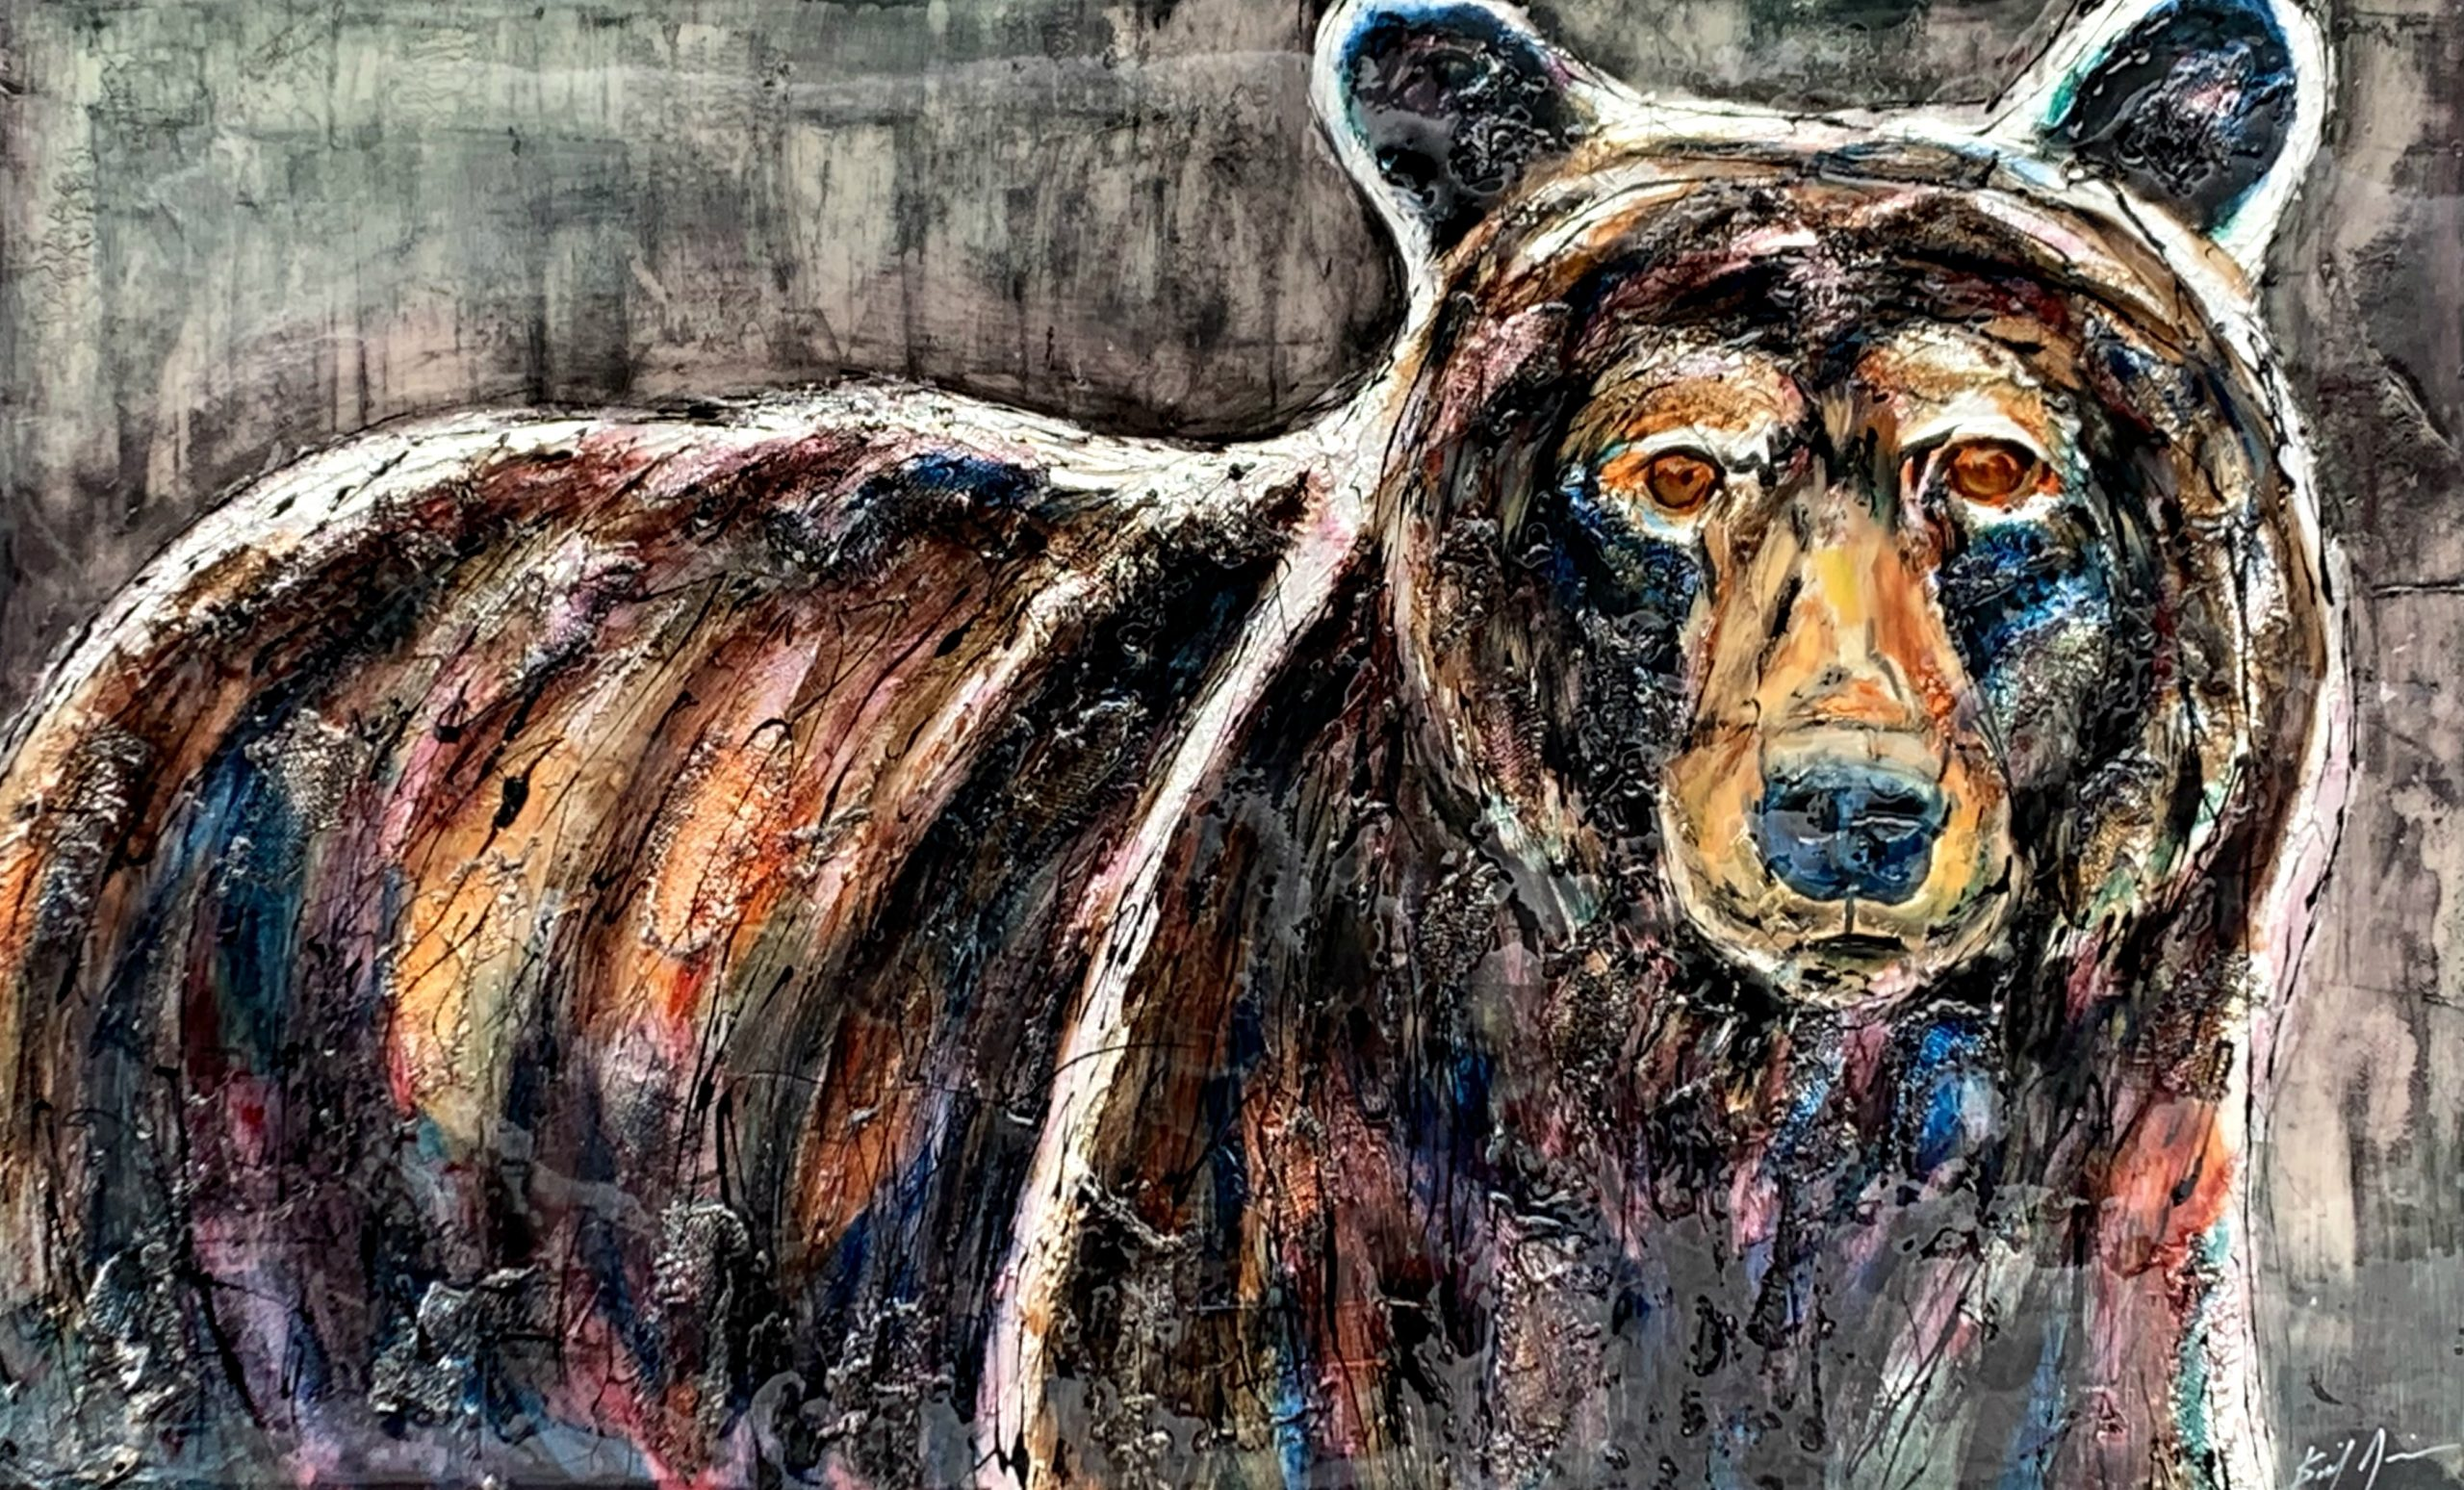 Looking to the Future, mixed media brown bear painting by David Zimmerman | Effusion Art Gallery + Cast Glass Studio, Invermere BC